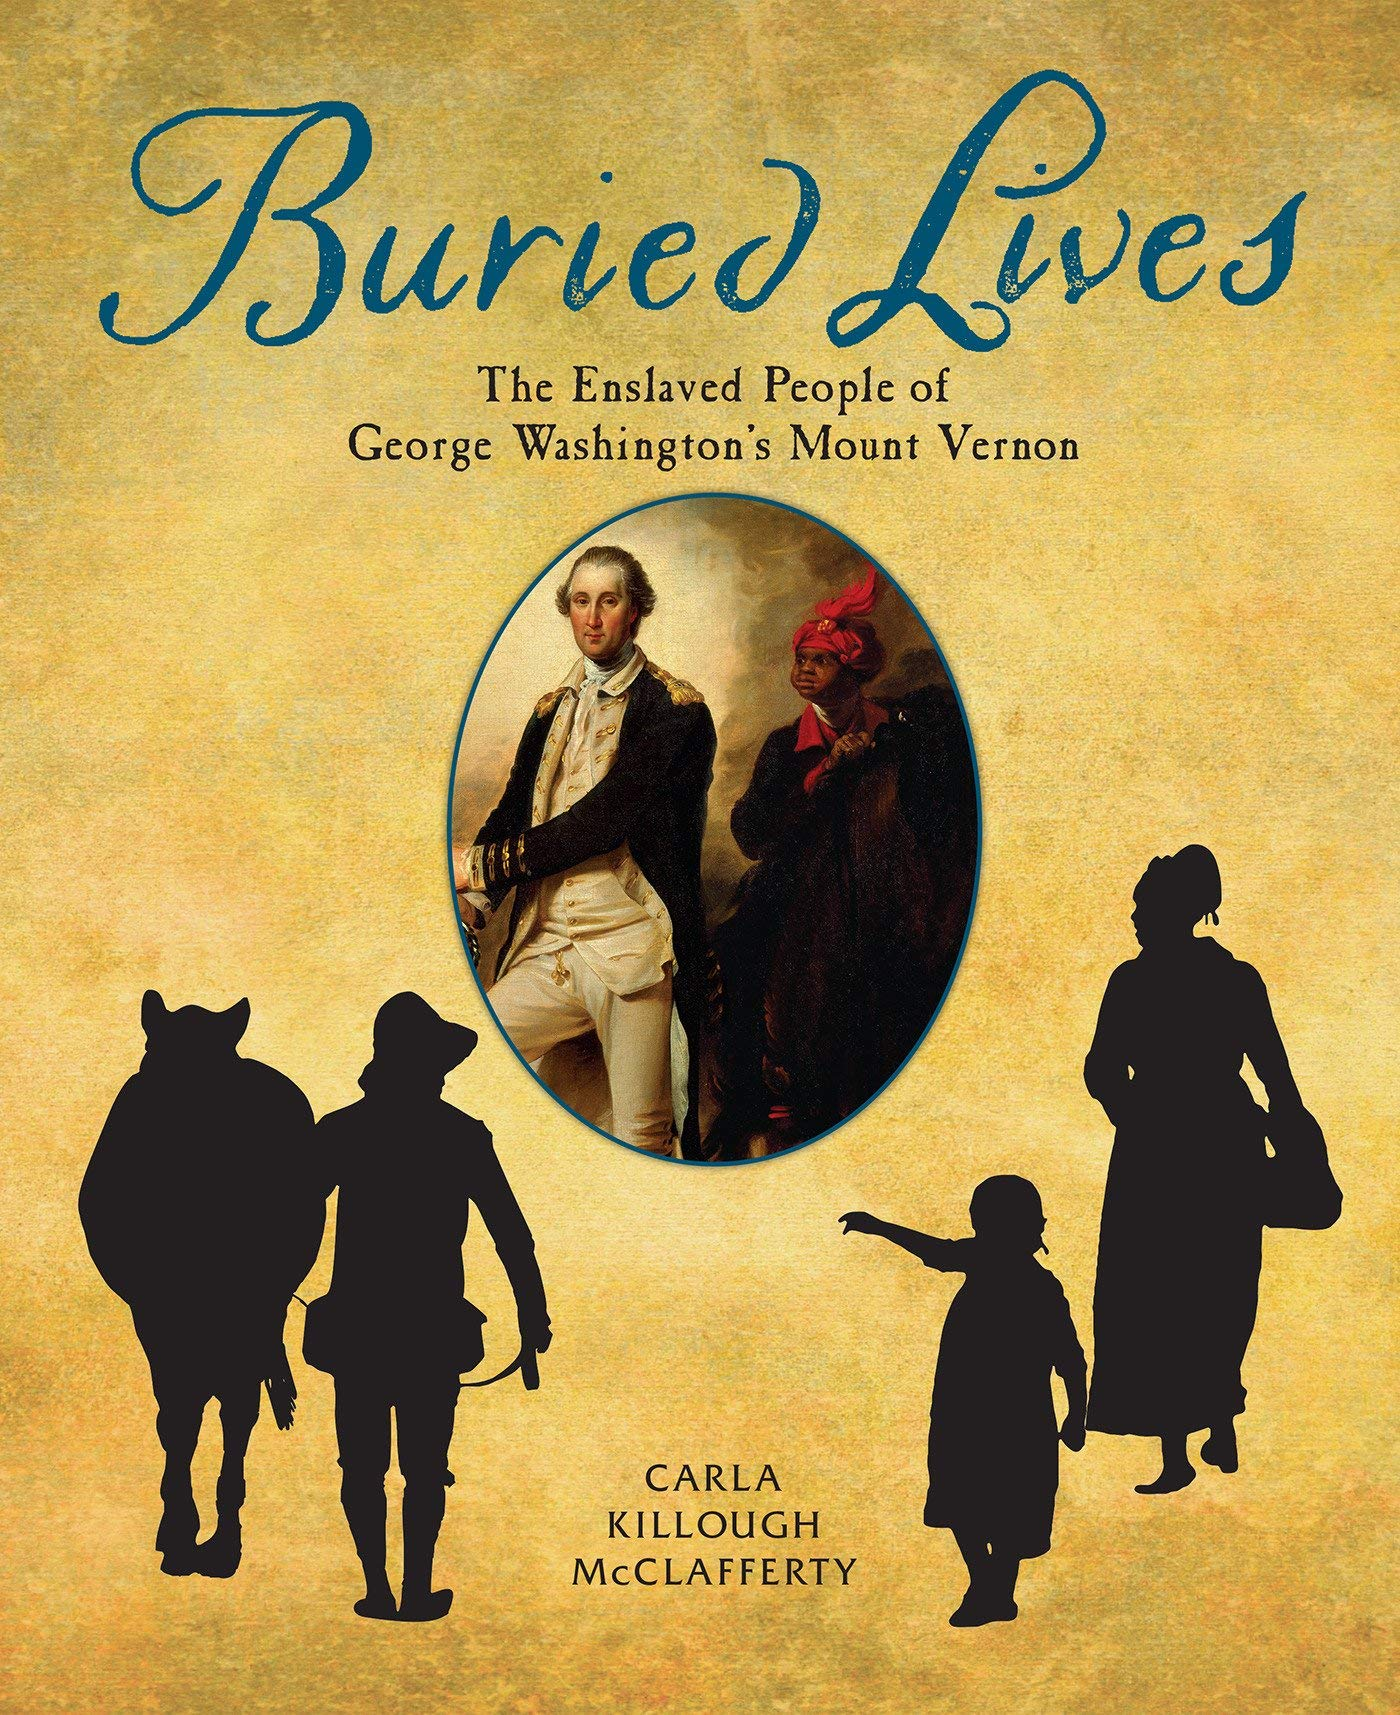 Buried Lives: The Enslaved People of George Washington's Mount Vernon